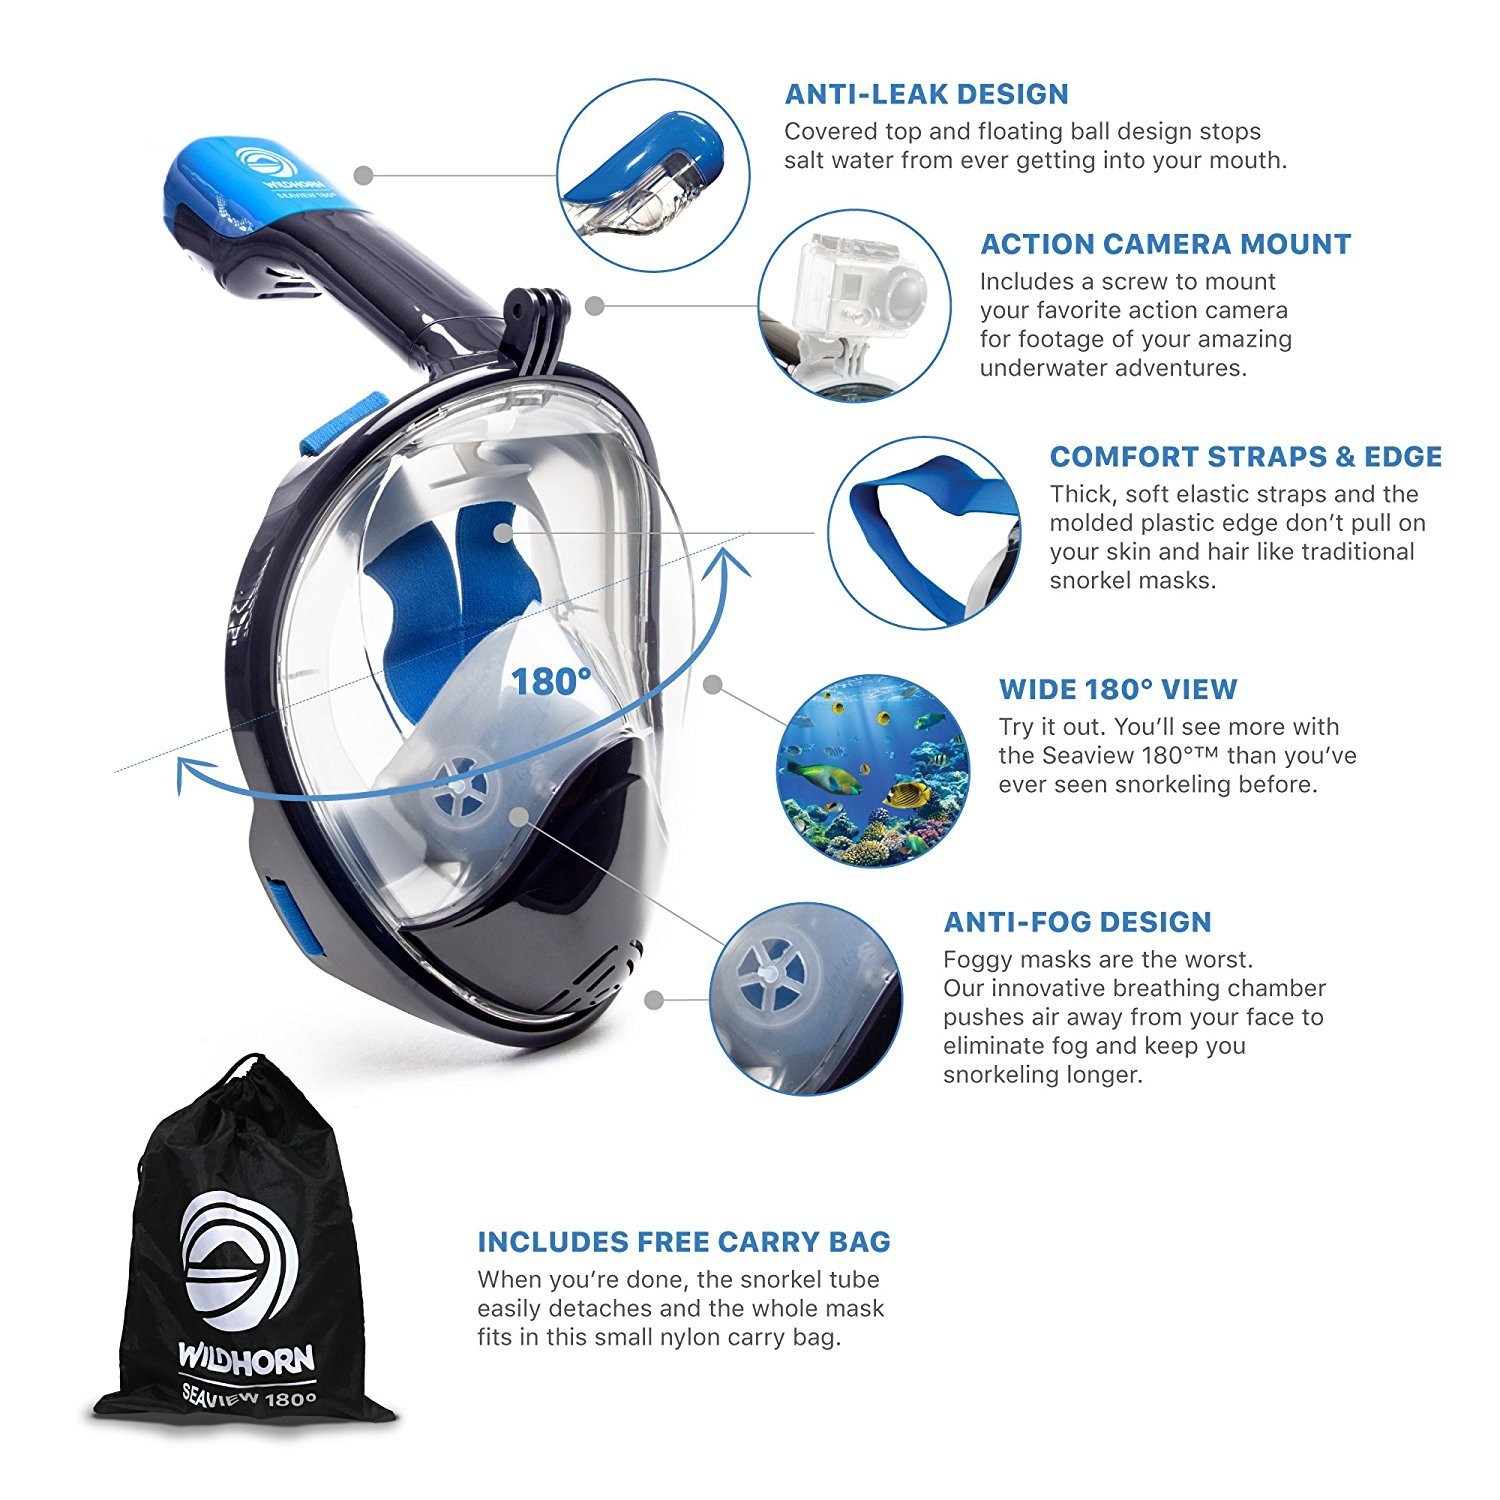 WildHorn Outfitters Seaview 180 Degree Panoramic Snorkel Mask- Full Face Design,Panoramic Navy Blue/Gray,Large/Extra Large by WildHorn Outfitters (Image #4)